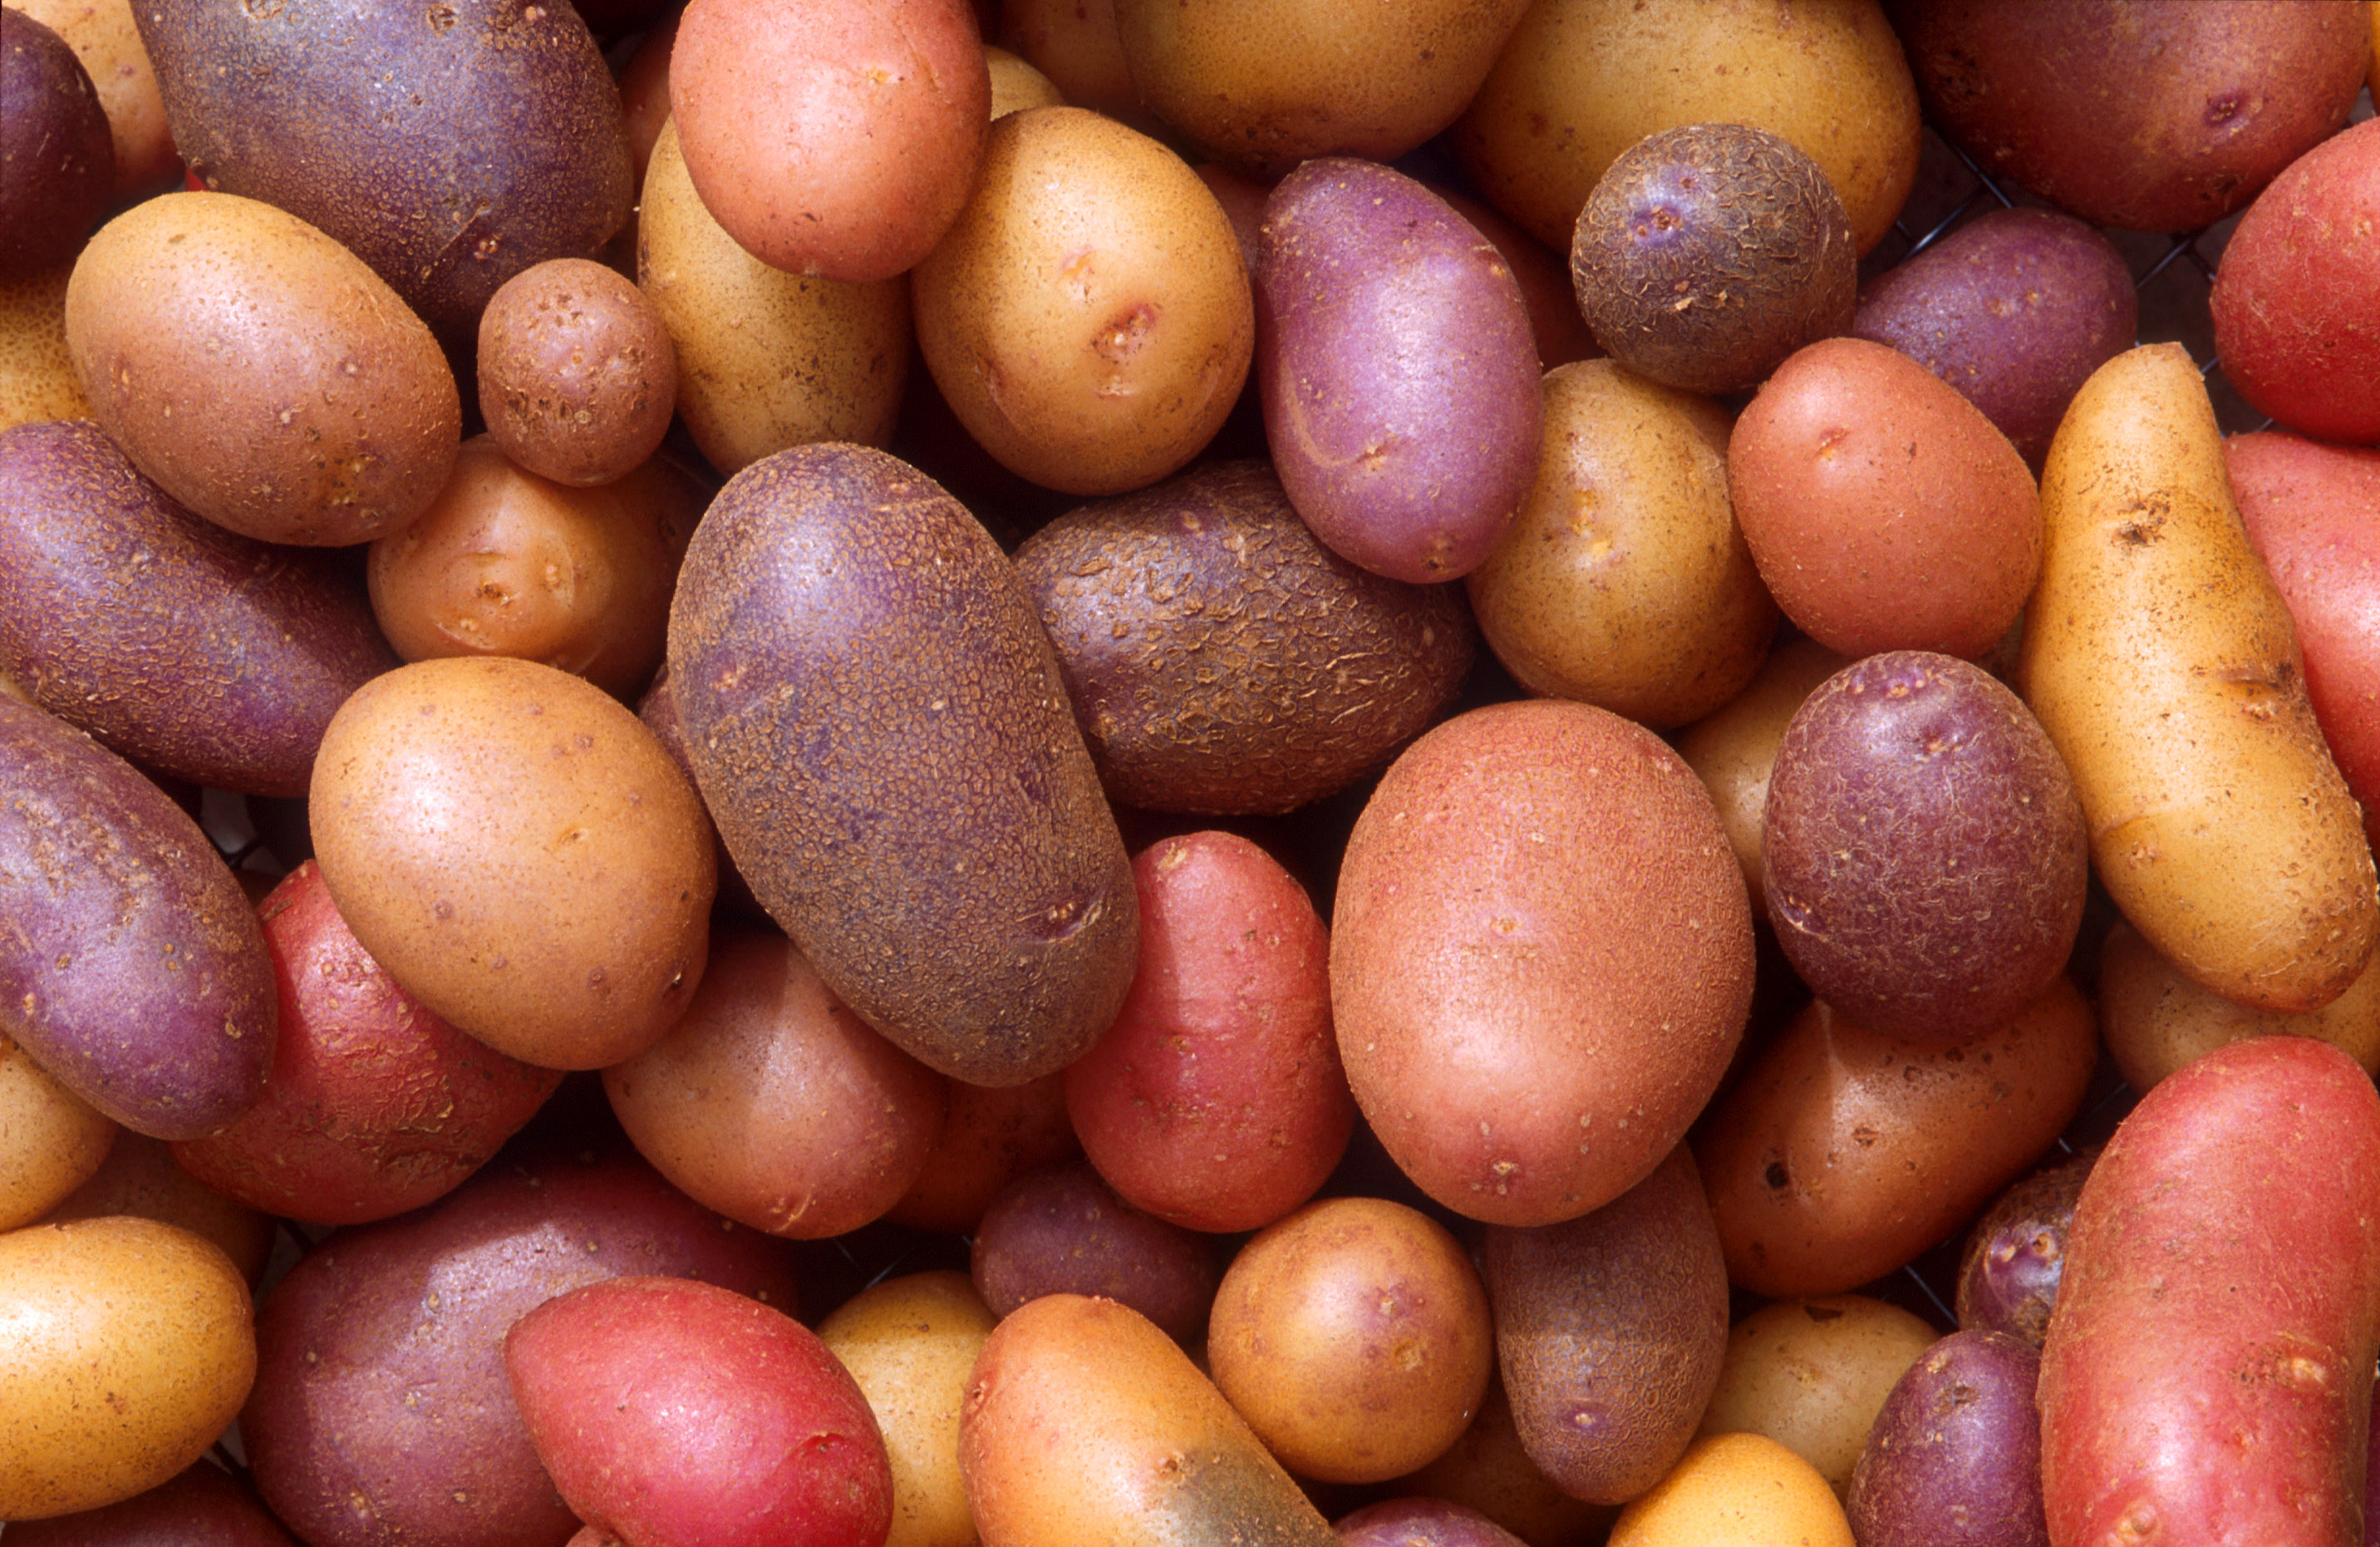 Potato Cultivars Appear In A Variety Of Colors Shapes And Sizes